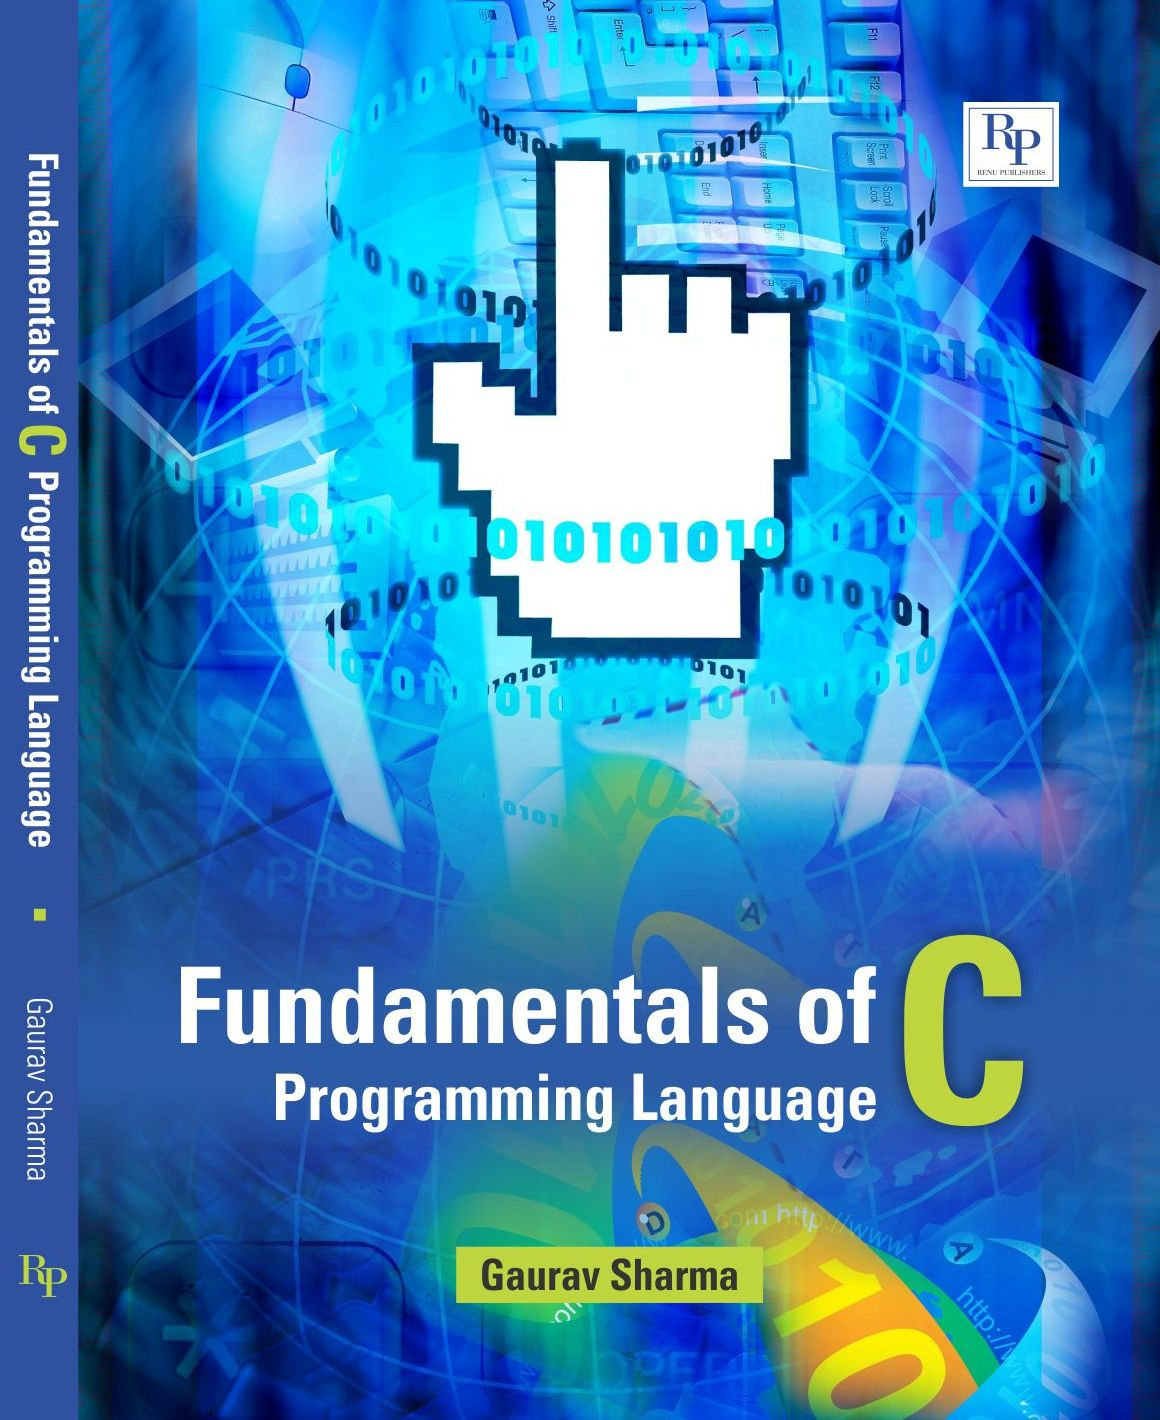 Fundaments of C Programming LanguageS (1).jpg